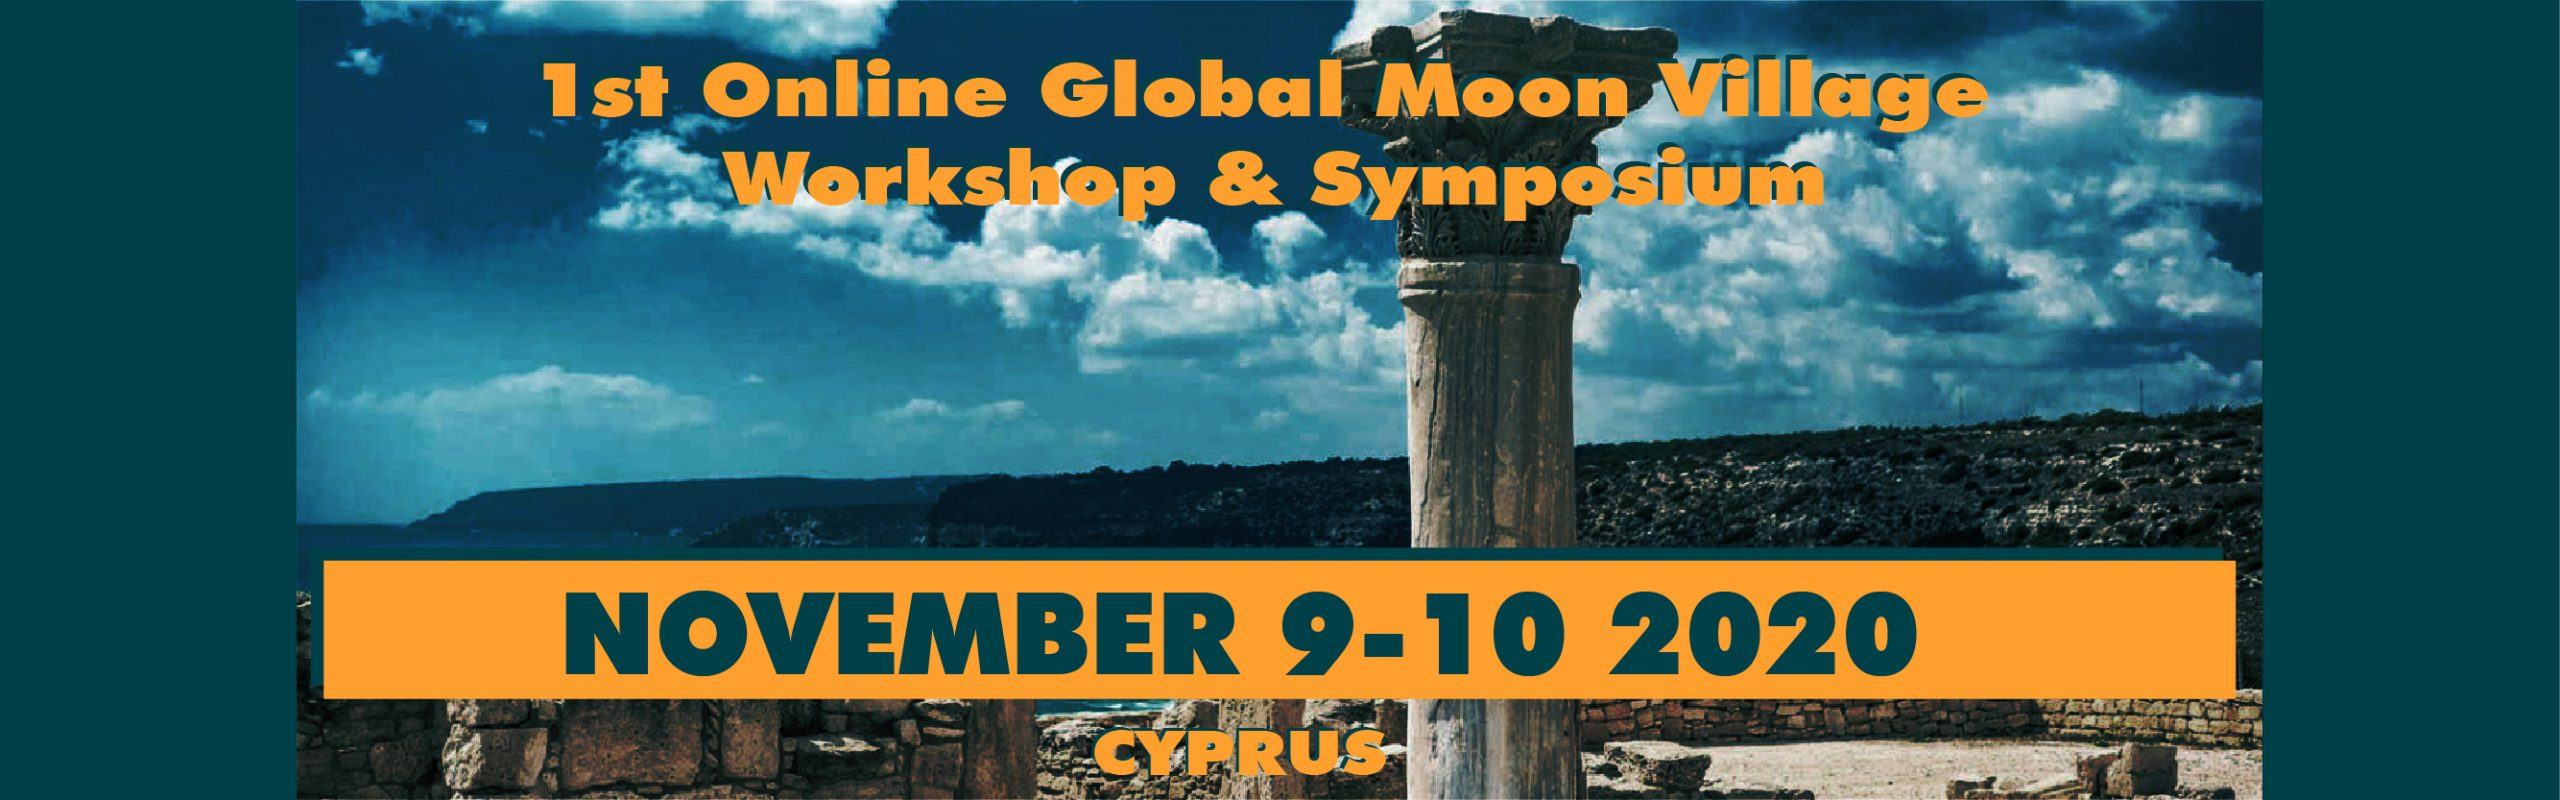 1st Online Global Moon Village Workshop & Symposium